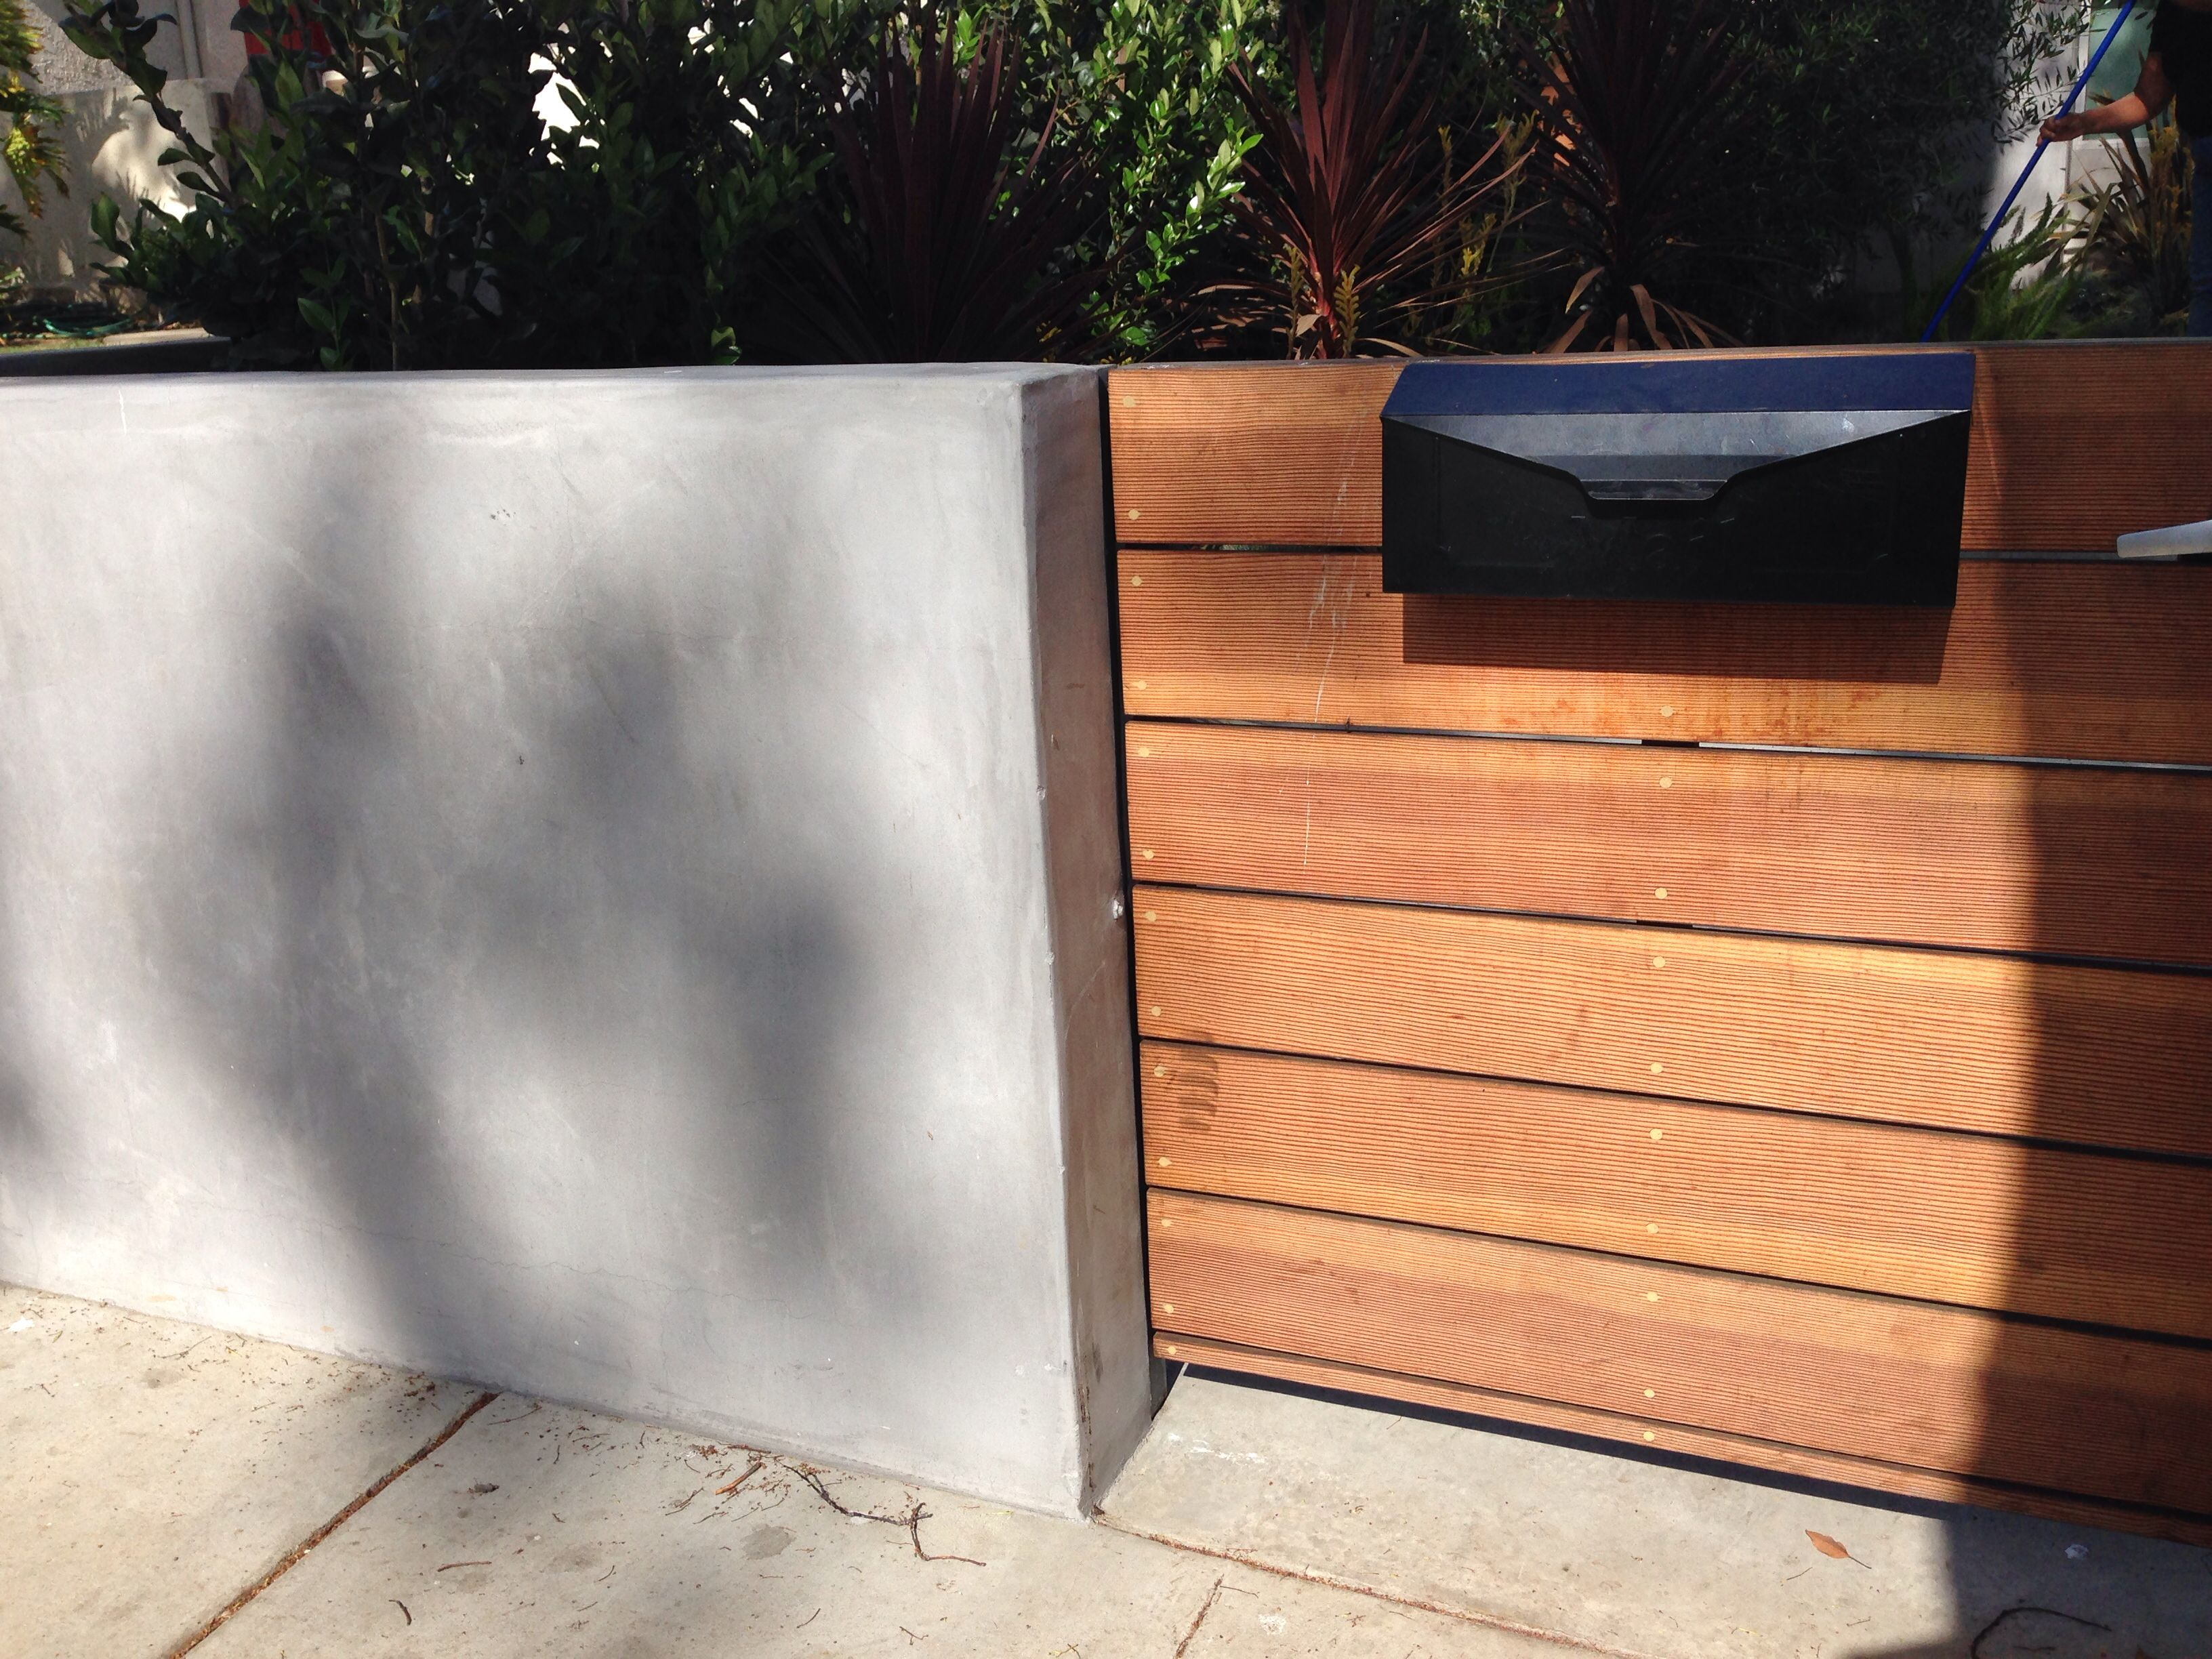 Smooth Stucco Light Gray Stucco Exterior Pacific Palisades Home Remodeling Modern Design